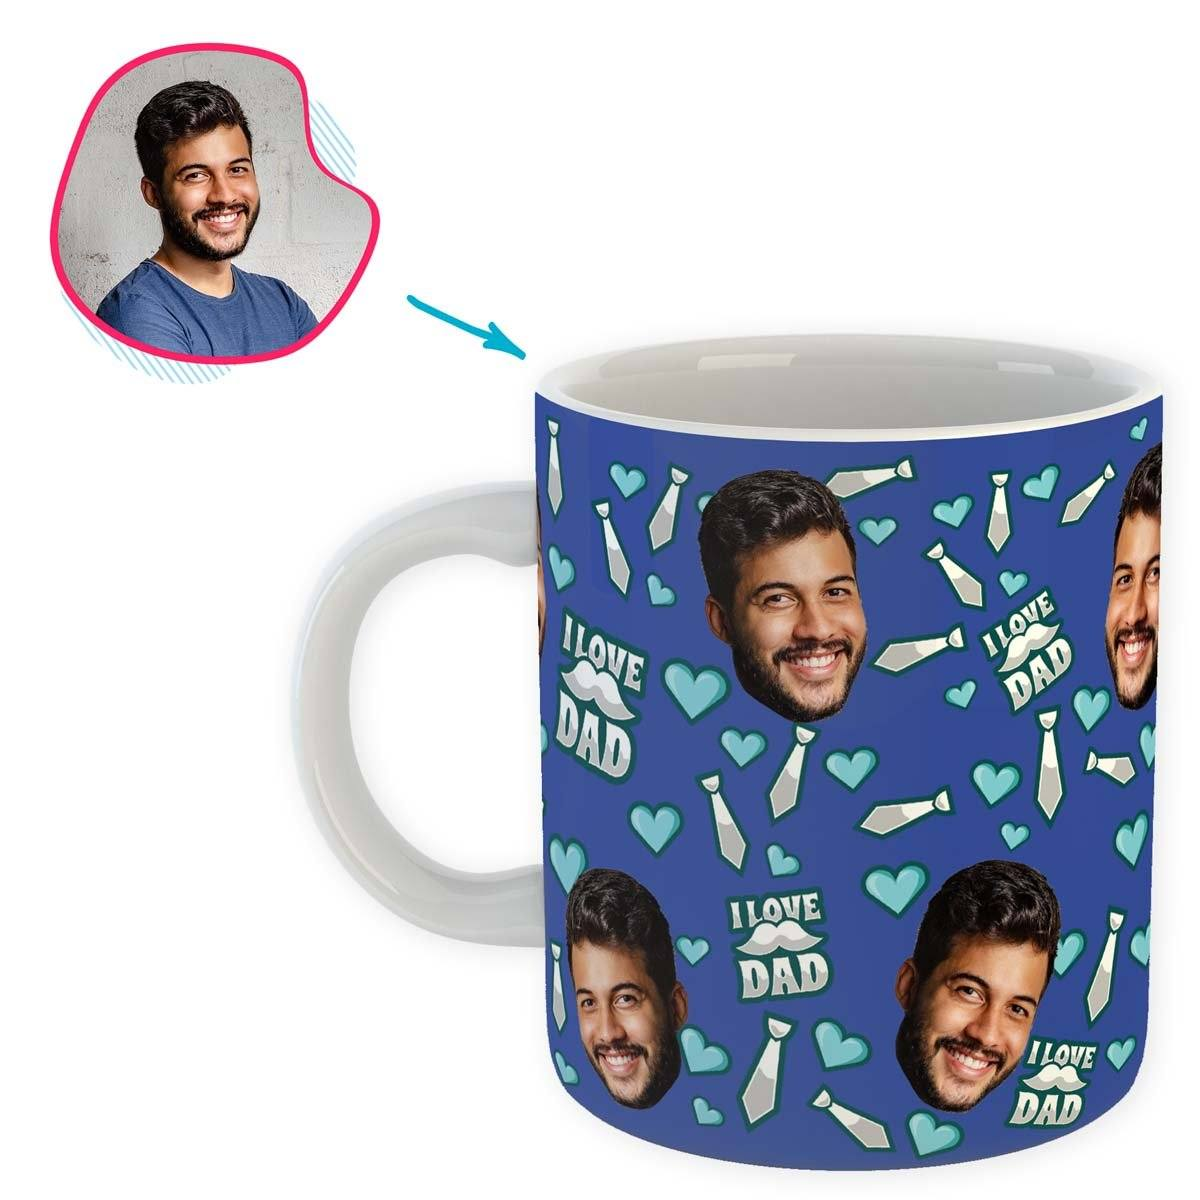 darkblue Love Dad mug personalized with photo of face printed on it